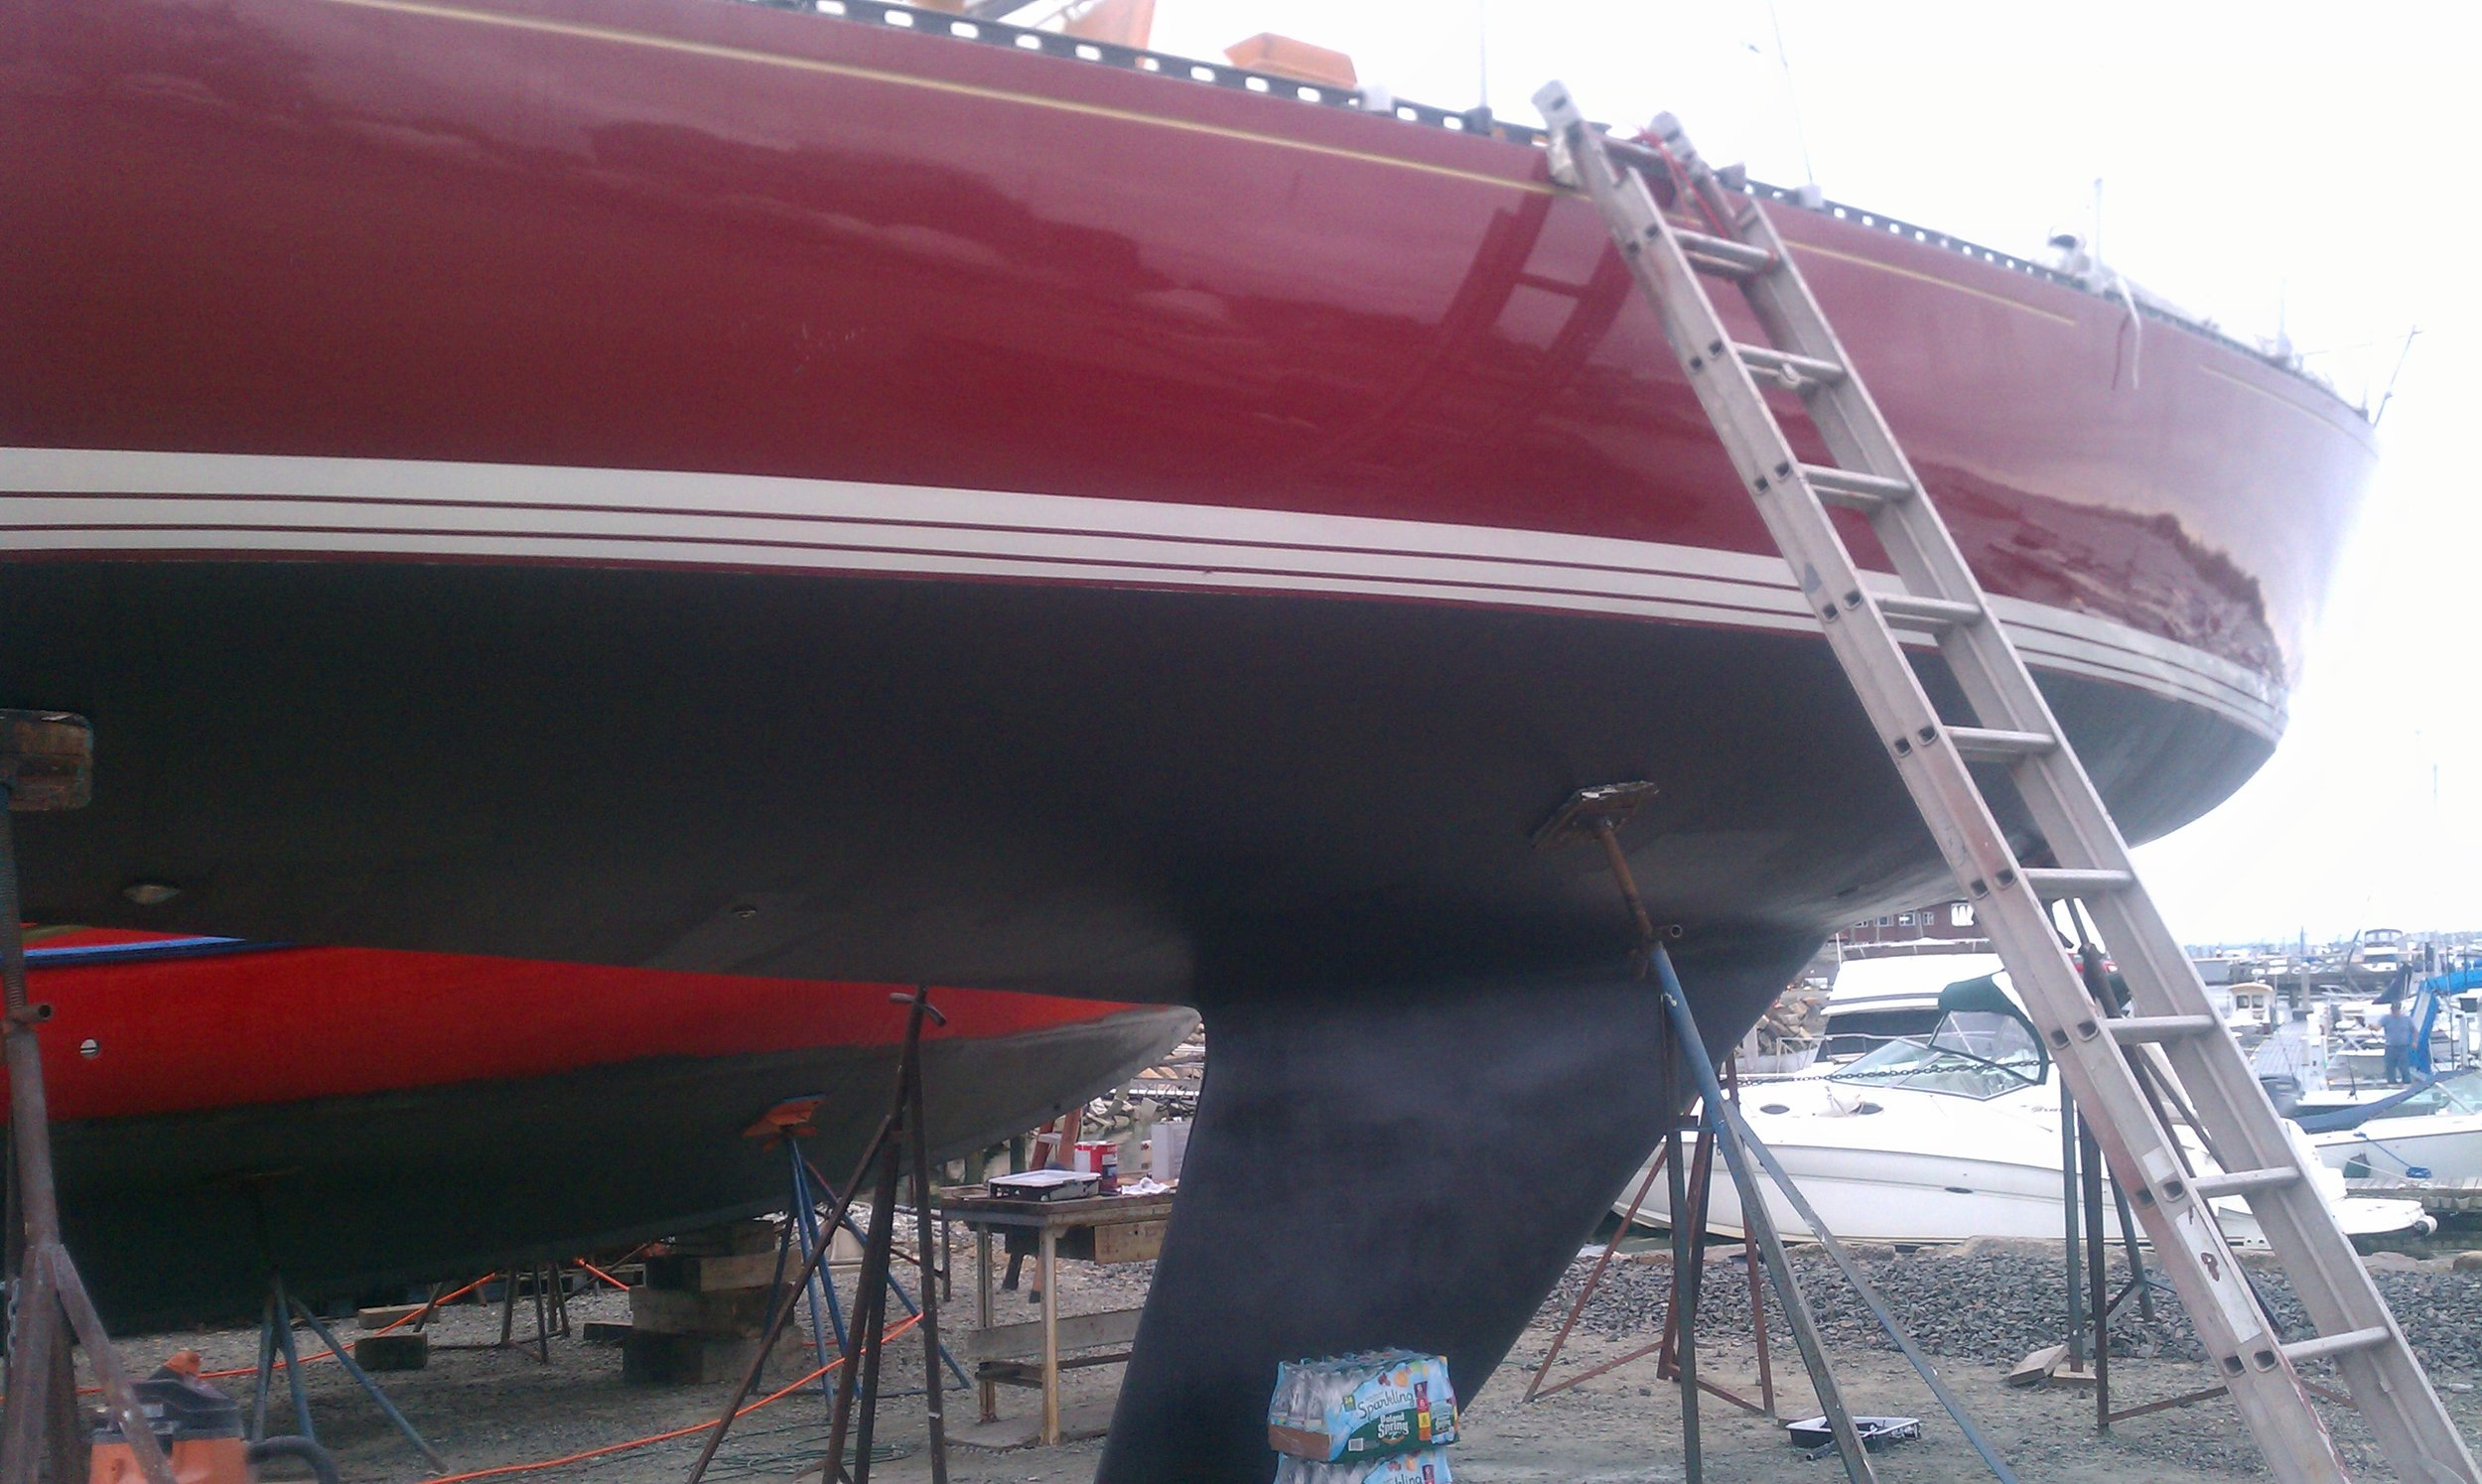 C&C 43' Sailboat with finished keel and buffed gelcoat sides getting ready for launch.